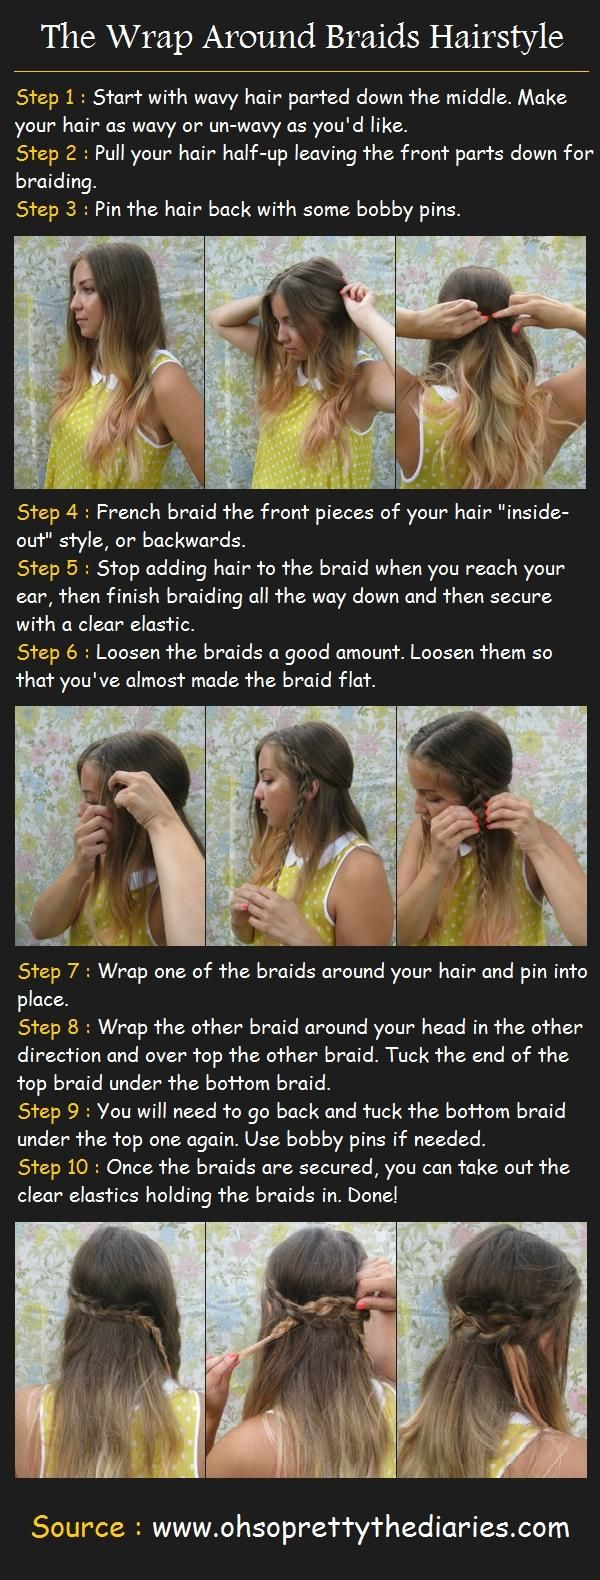 Wrap Around Braids Tut